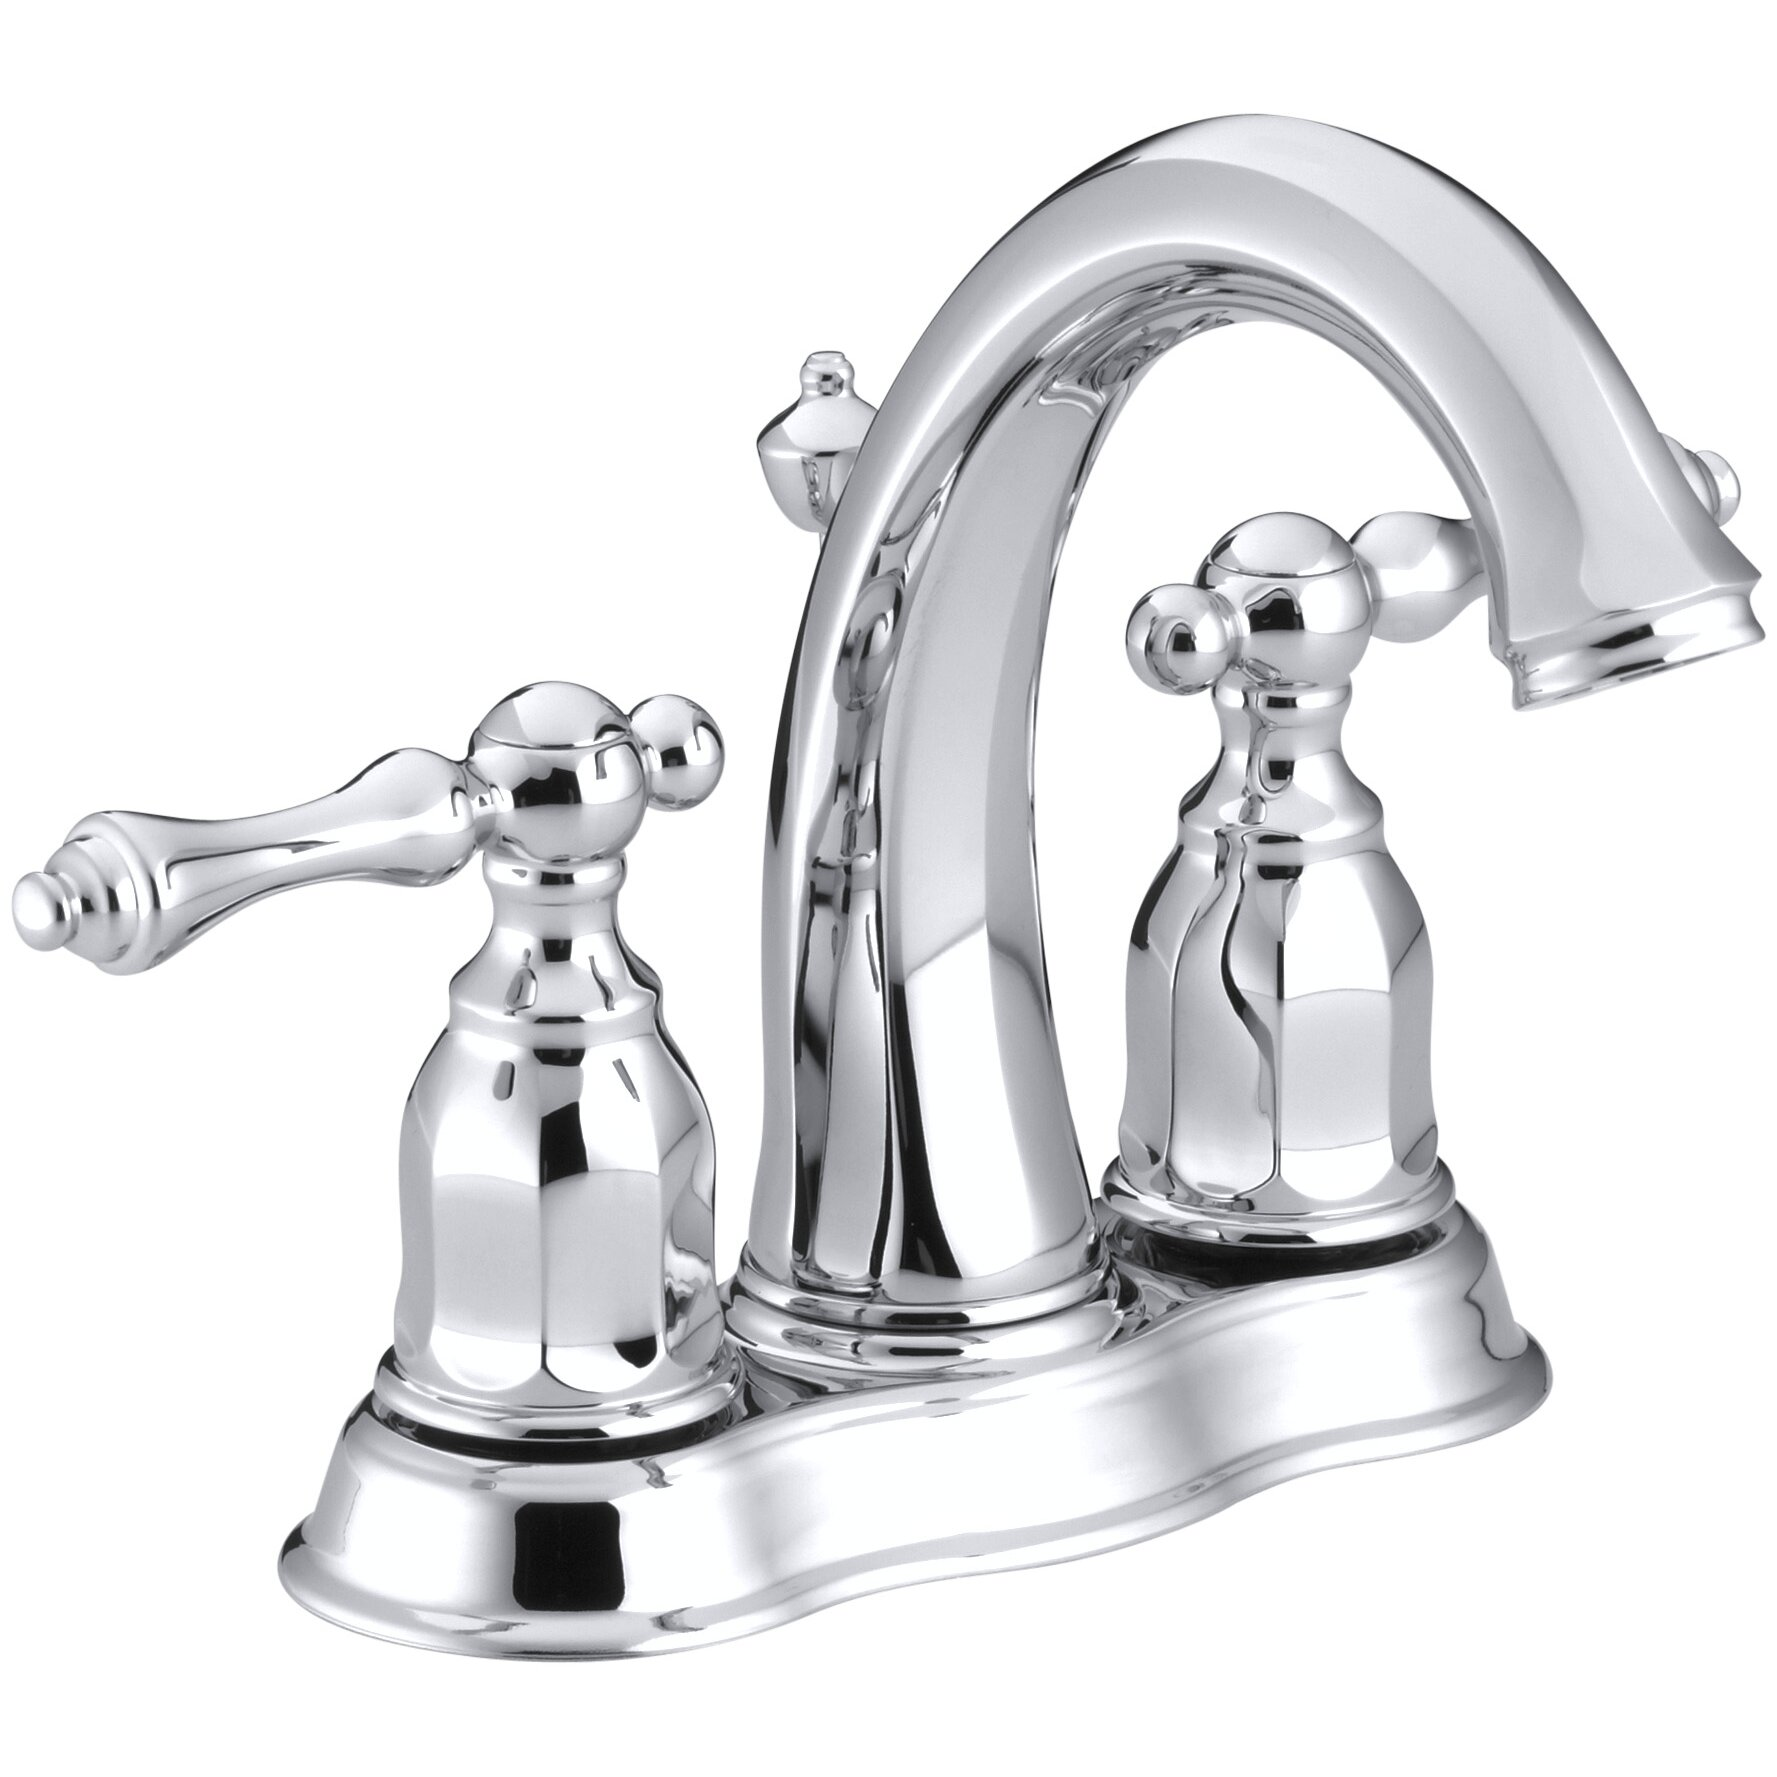 Kohler Faucet Reviews : Kohler Kelston Centerset Bathroom Sink Faucet & Reviews Wayfair